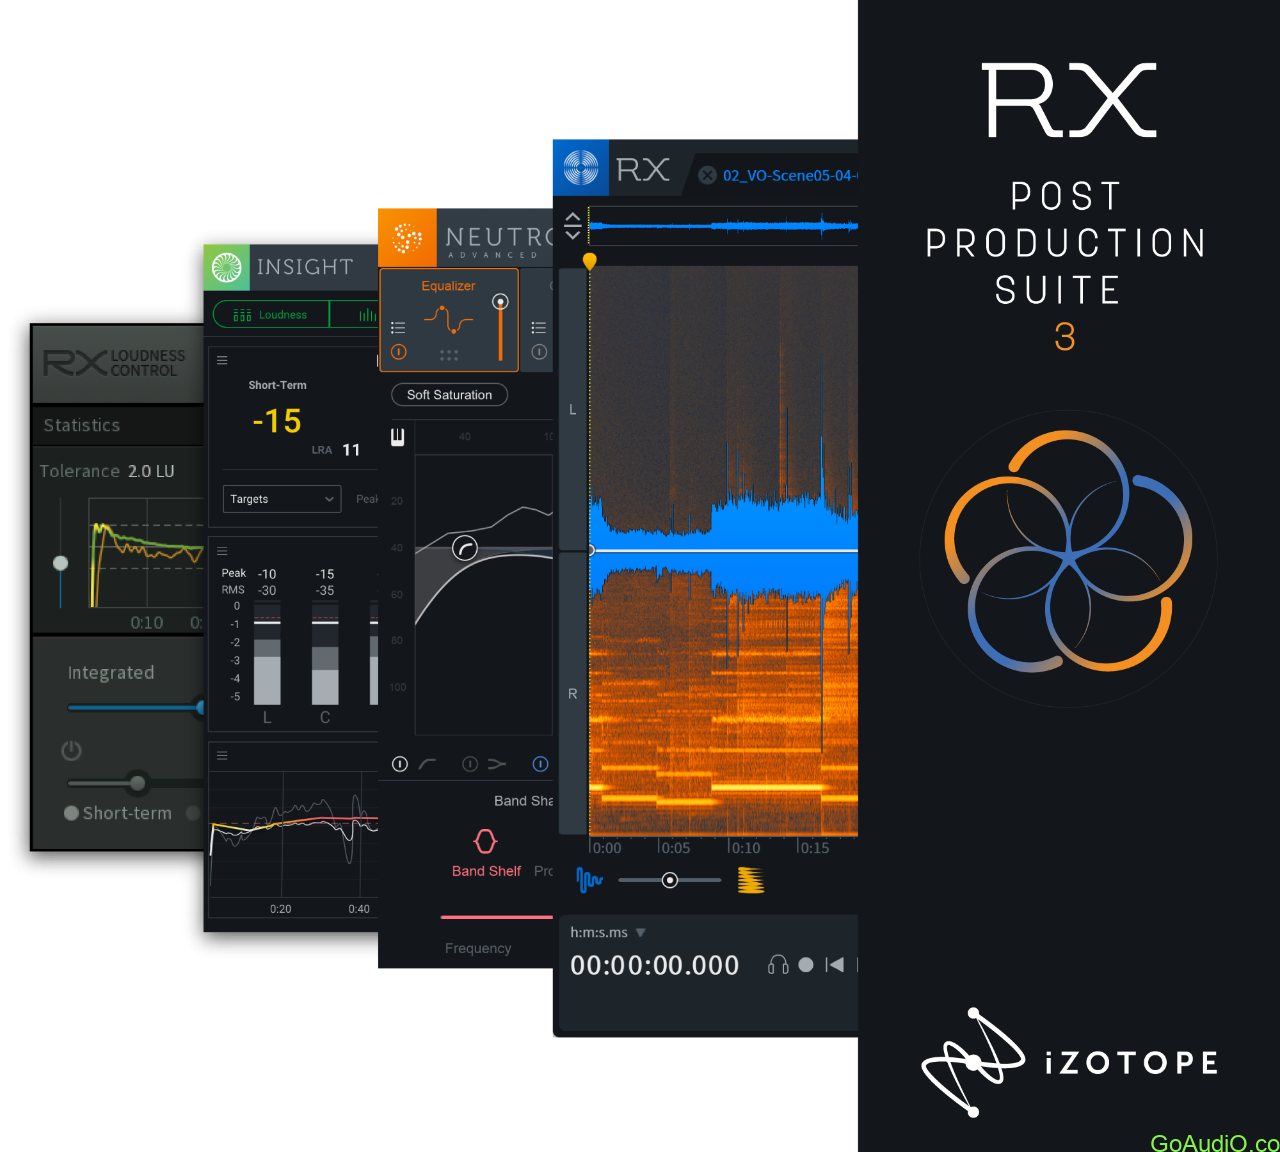 iZotope RX 7 Post Production Suite 2019 [WiN] v3.02 Free Download